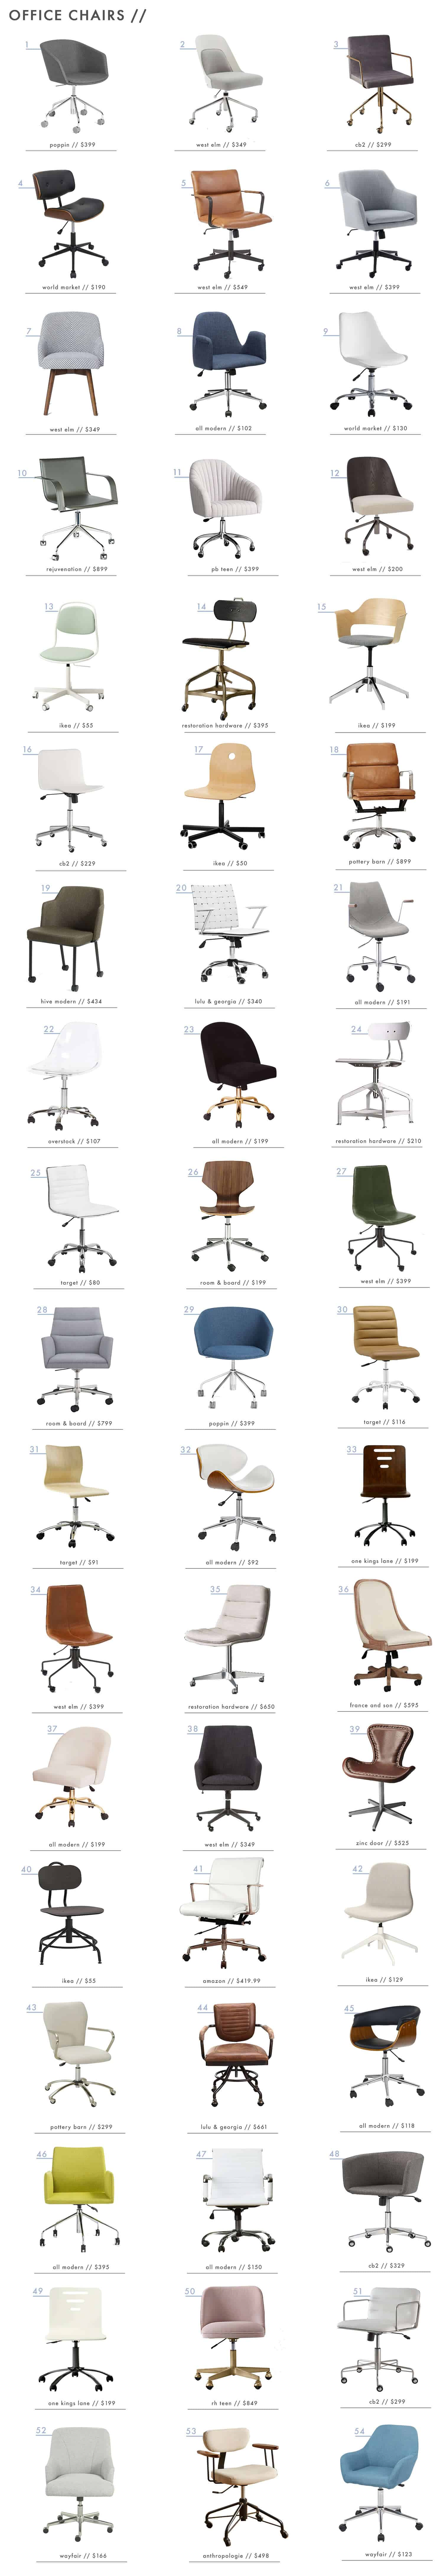 Emliy Henderson_Office Chairs_Roundup_1500px_FINAL